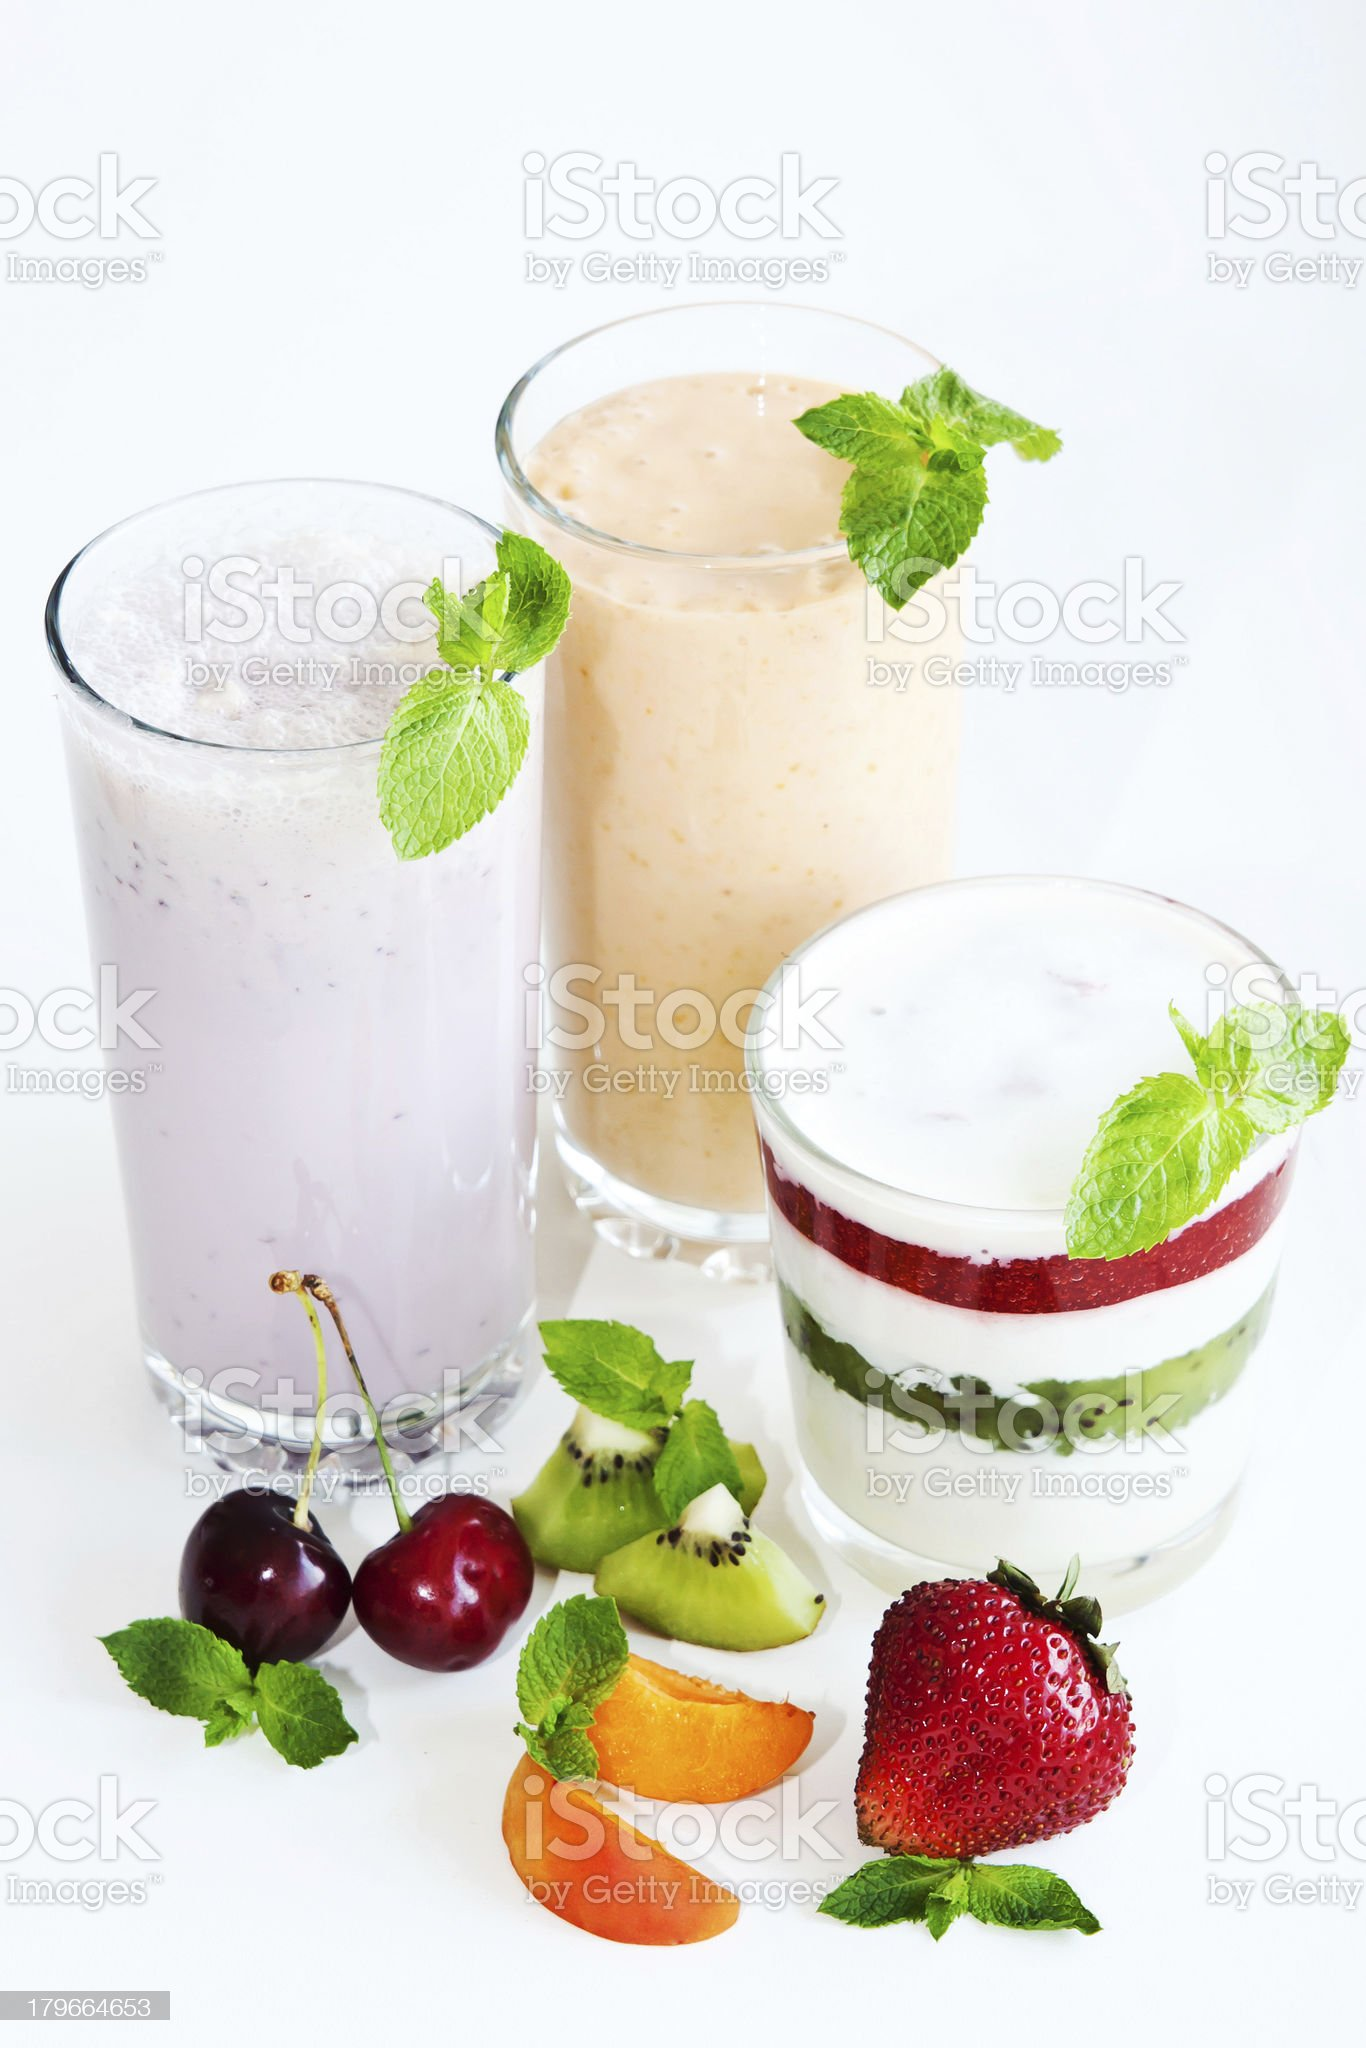 Dairy desserts with fruit royalty-free stock photo